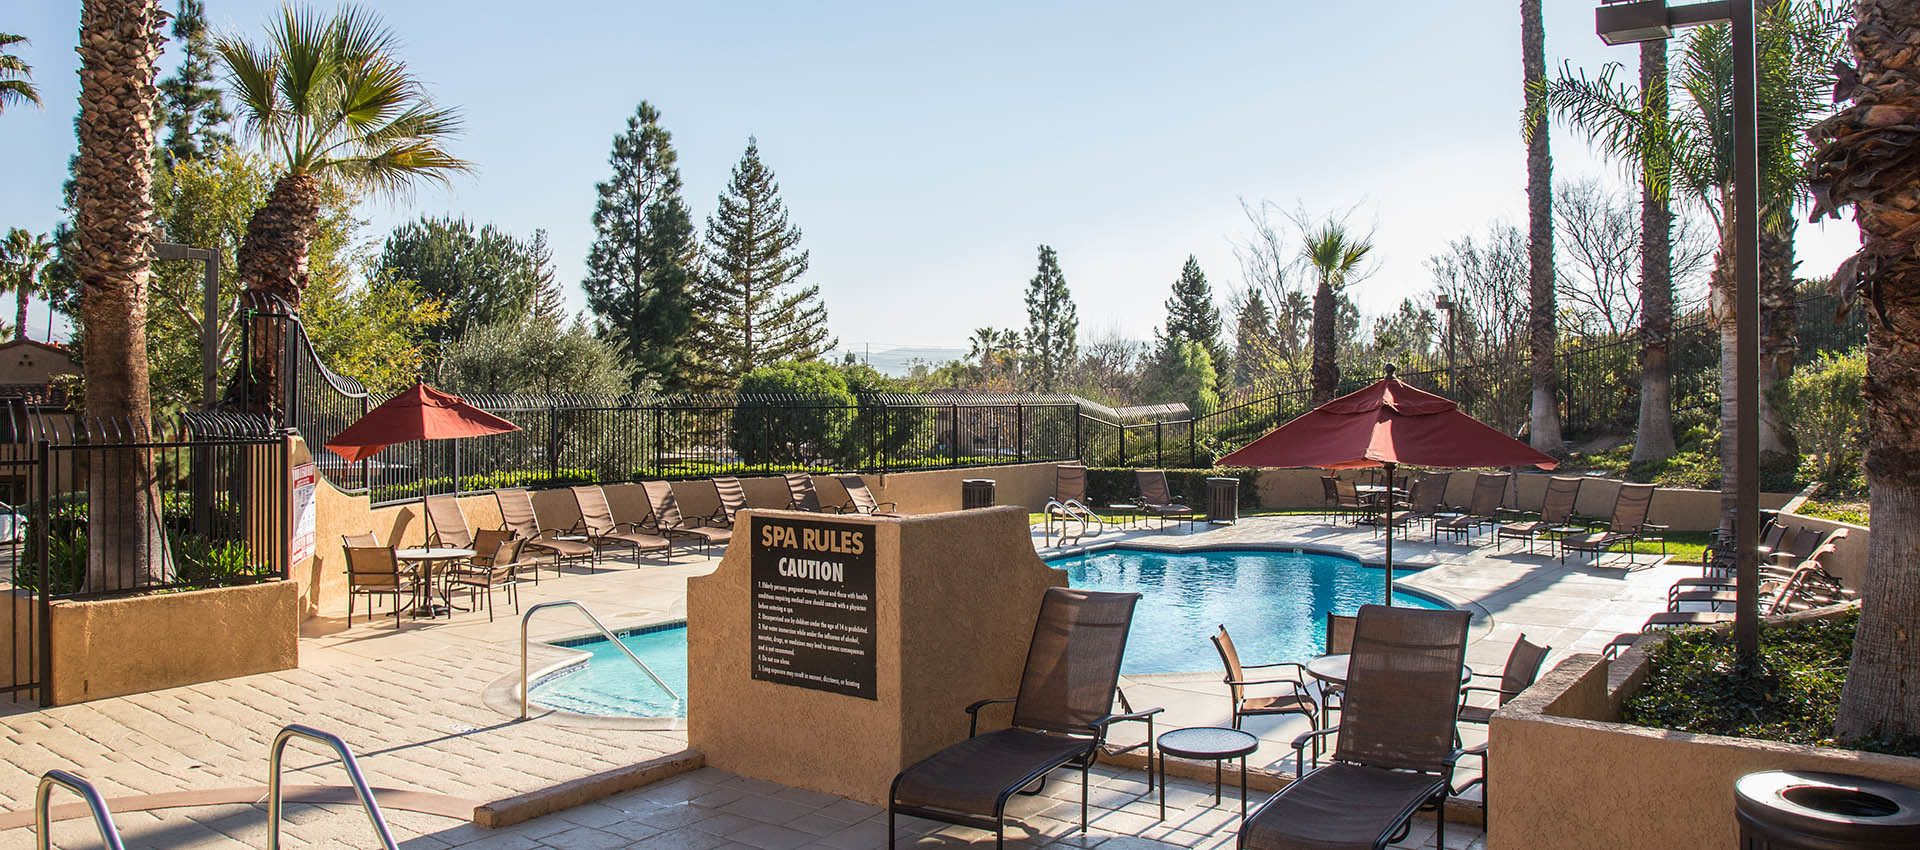 Pool and spa at apartments in Simi Valley, CA